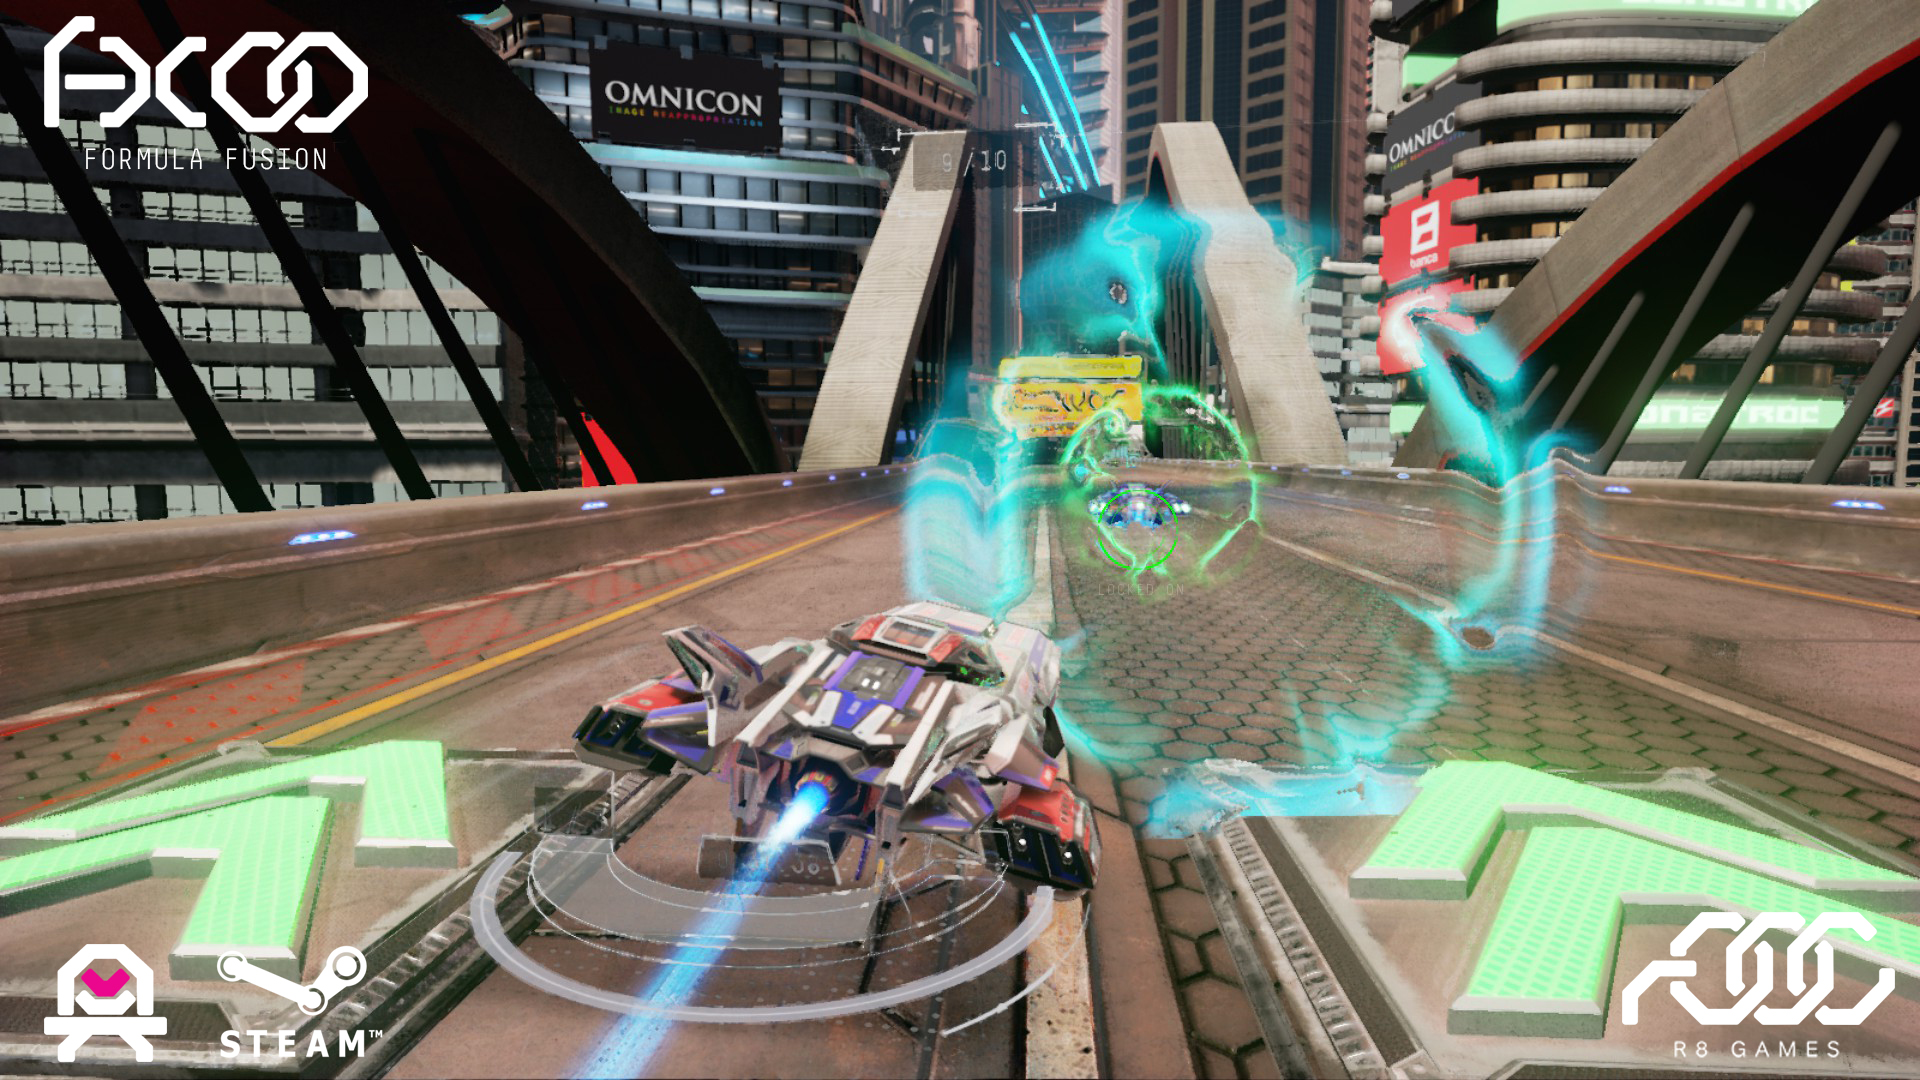 WipEout-inspired Formula Fusion lands on Steam Early Access